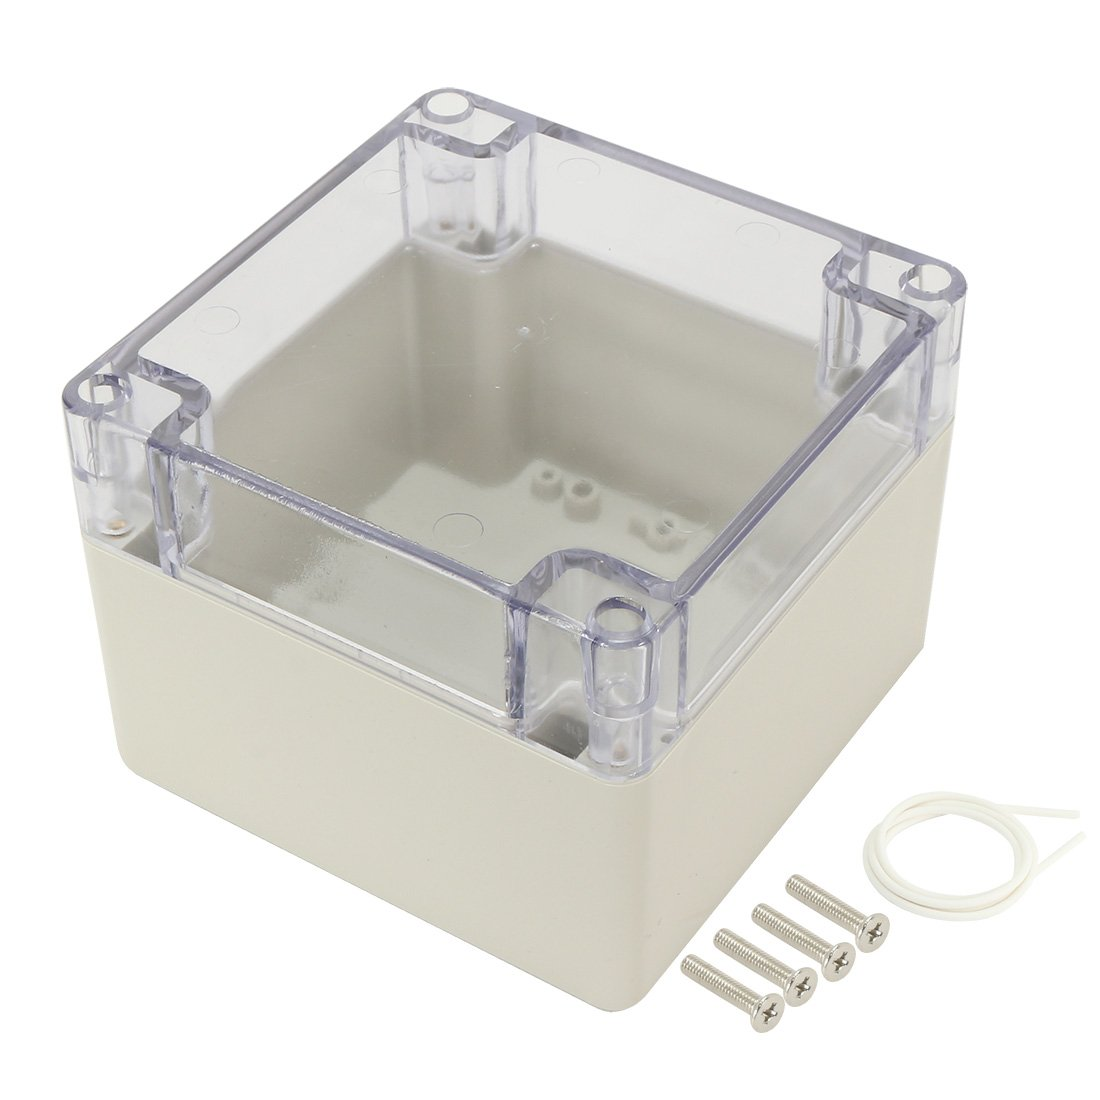 uxcell 4.7''x4.7''x3.5''(120mmx120mmx90mm) ABS Junction Box Universal Project Enclosure with PC Transparent Cover